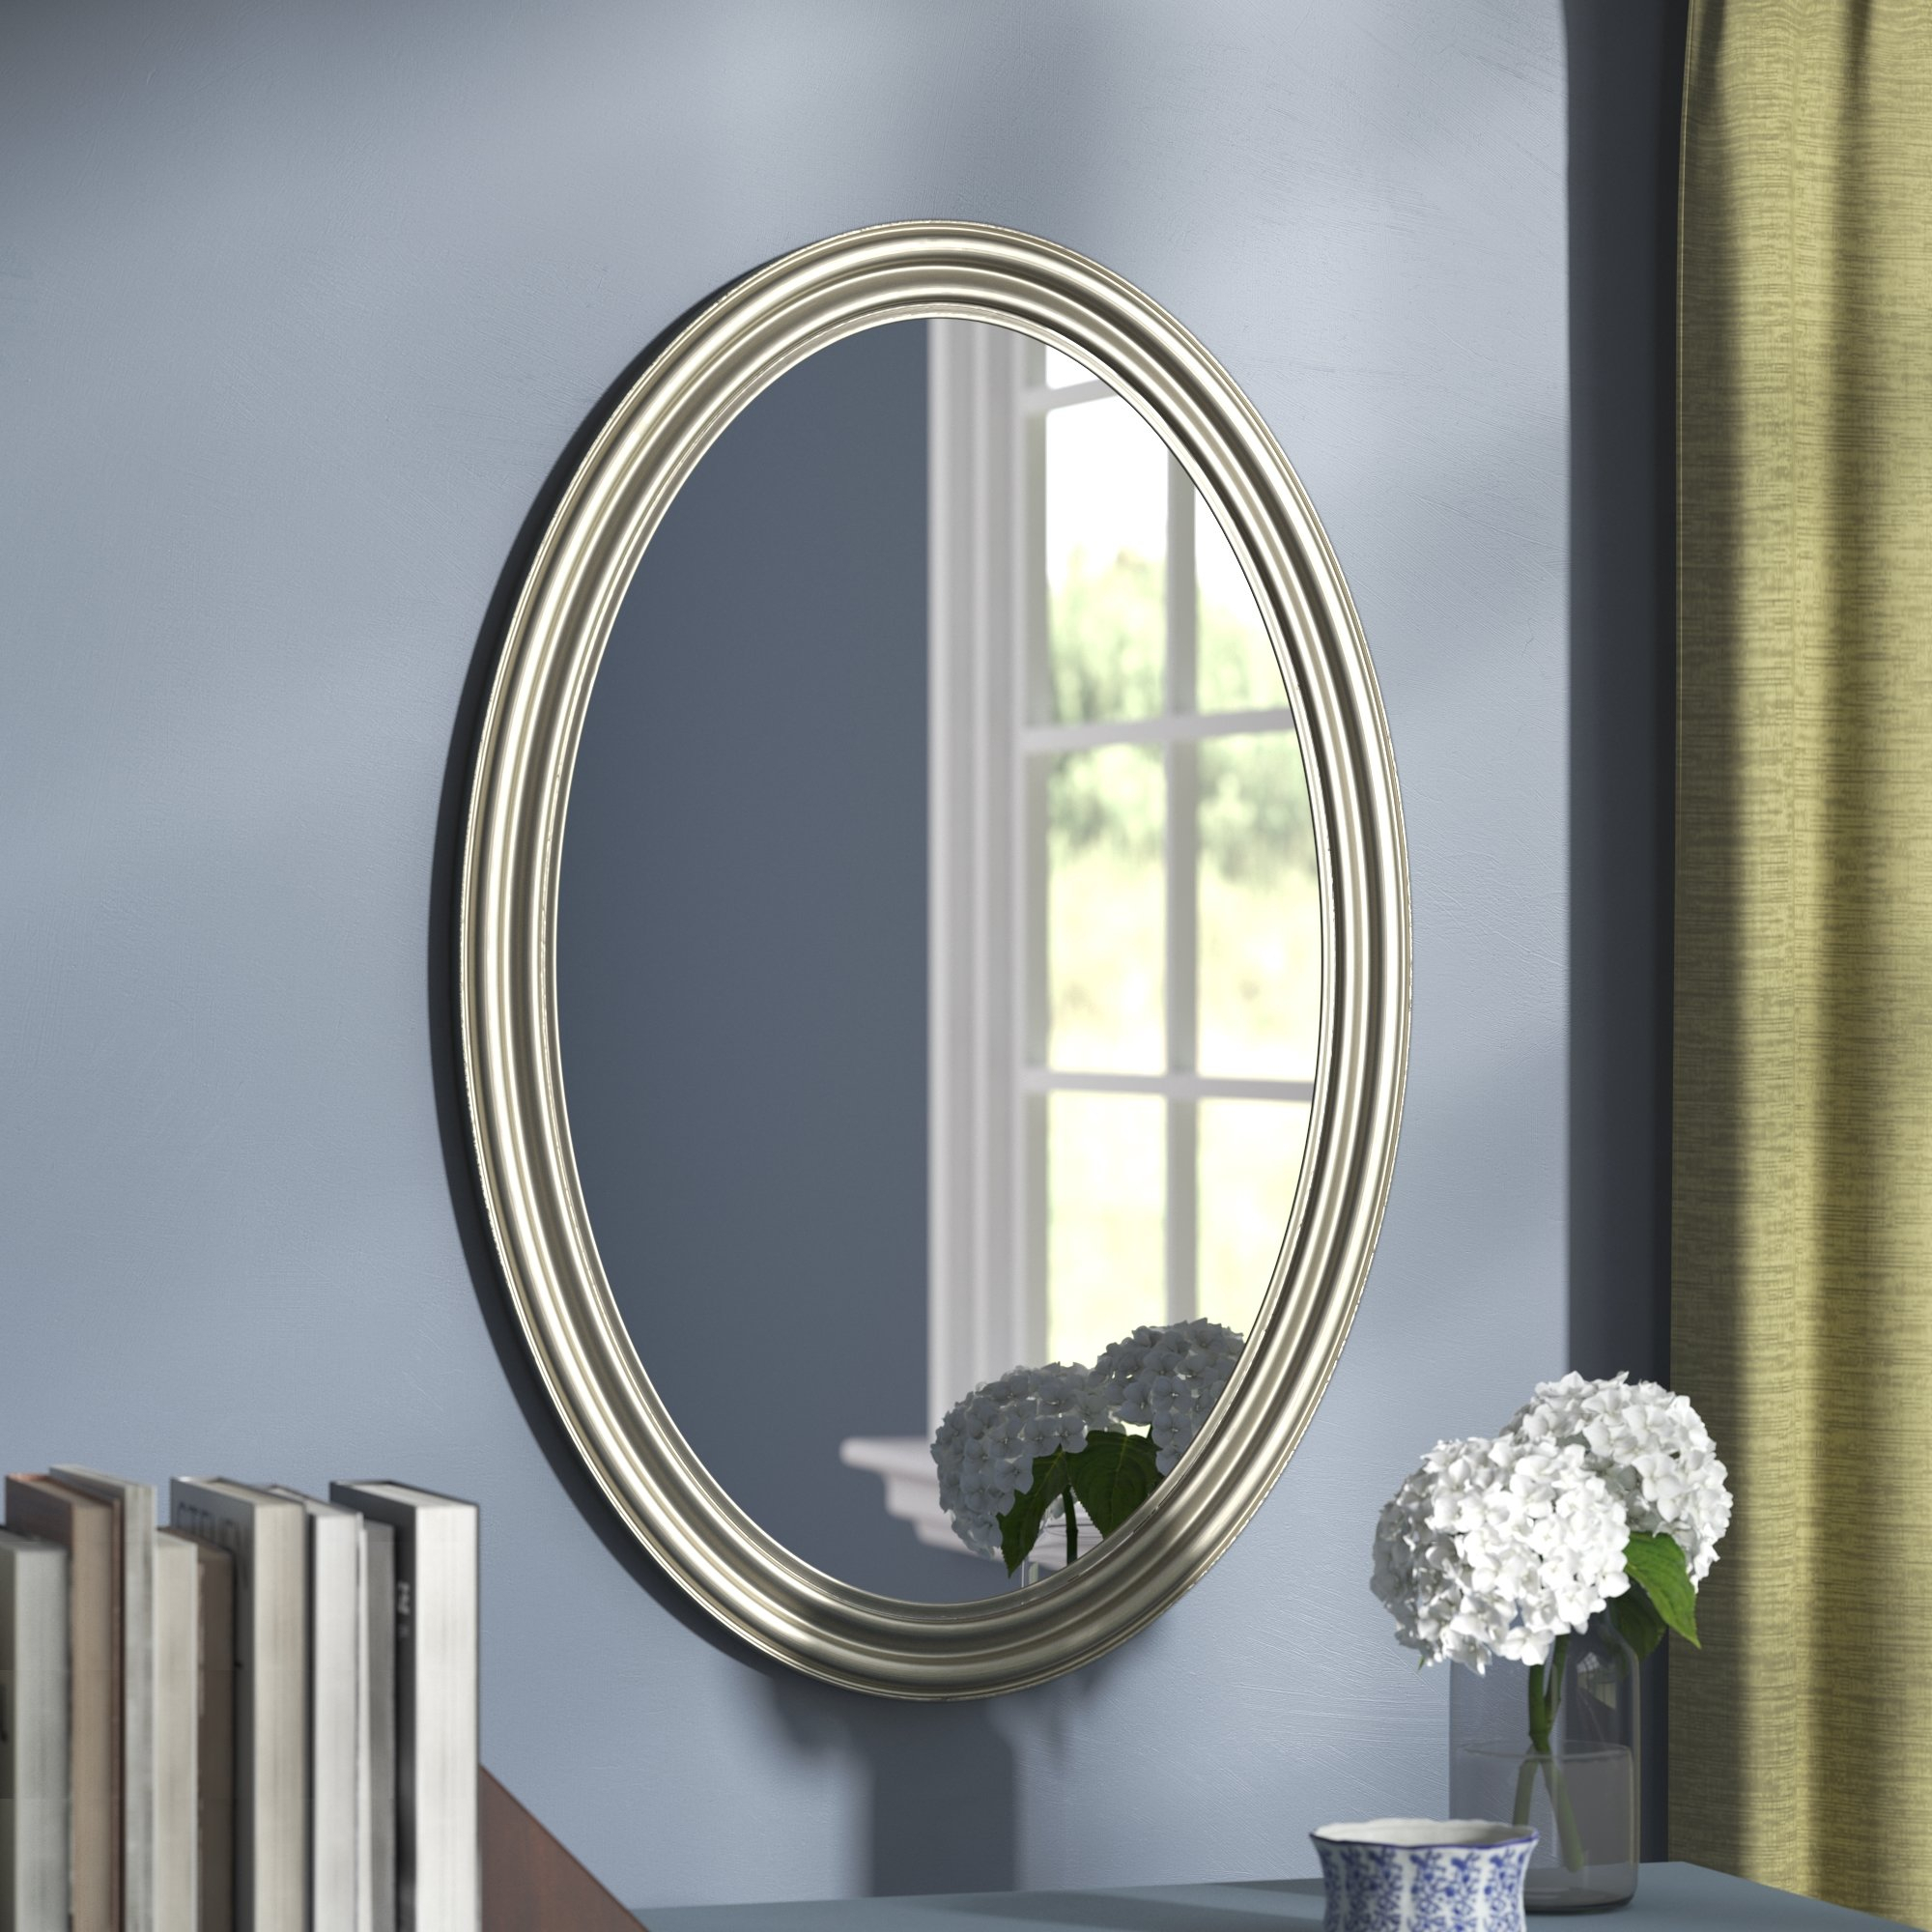 Hesson Mirror Intended For Charters Towers Accent Mirrors (Image 10 of 20)